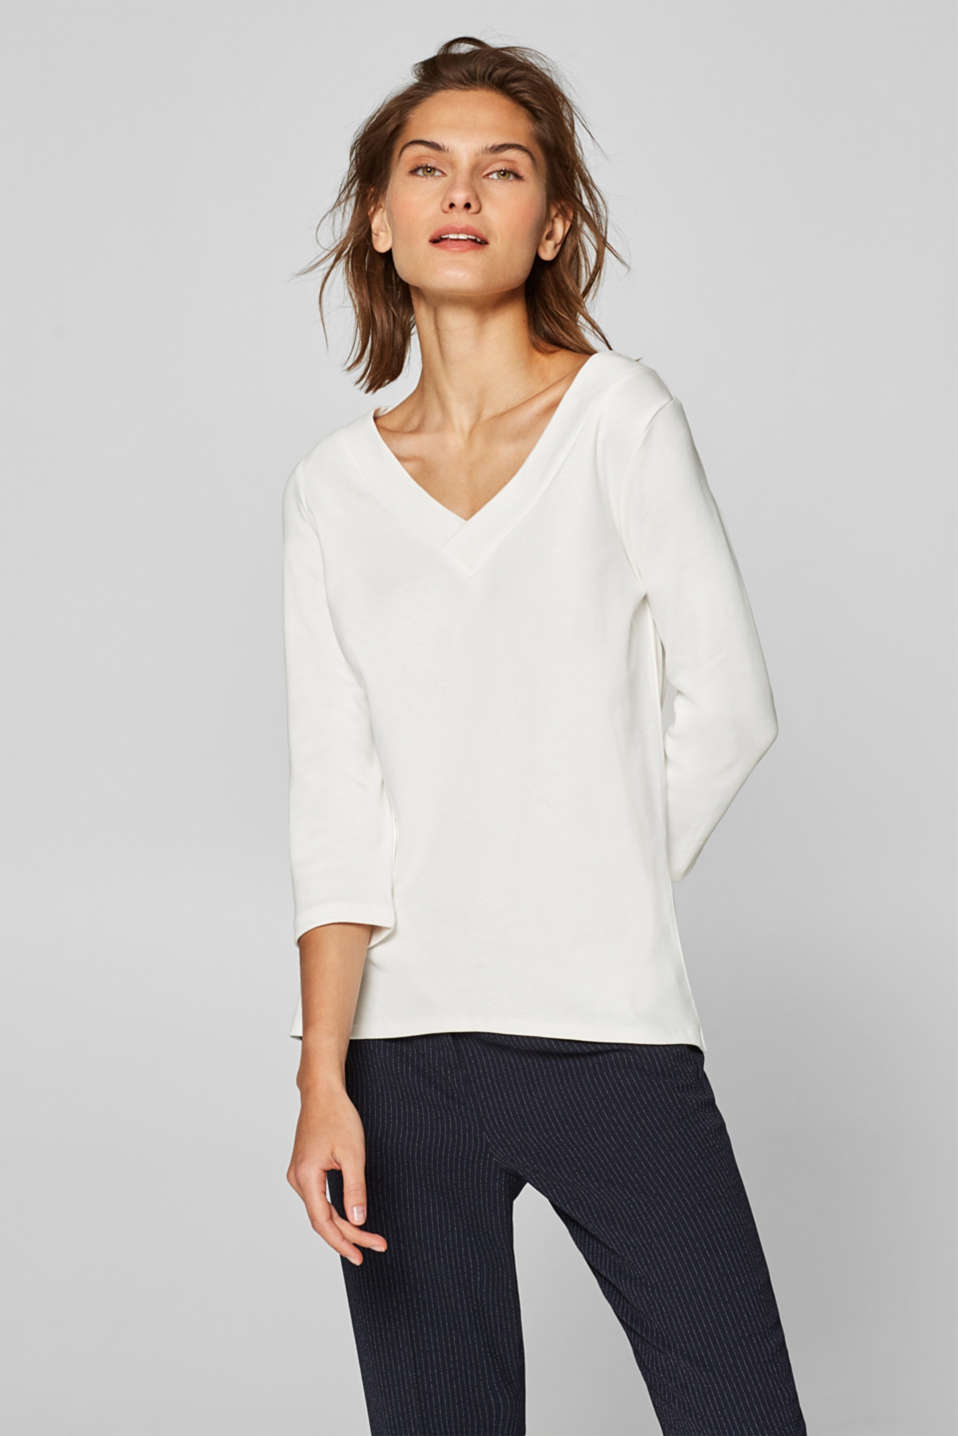 Esprit - Long sleeve design with a V-neckline and organic cotton